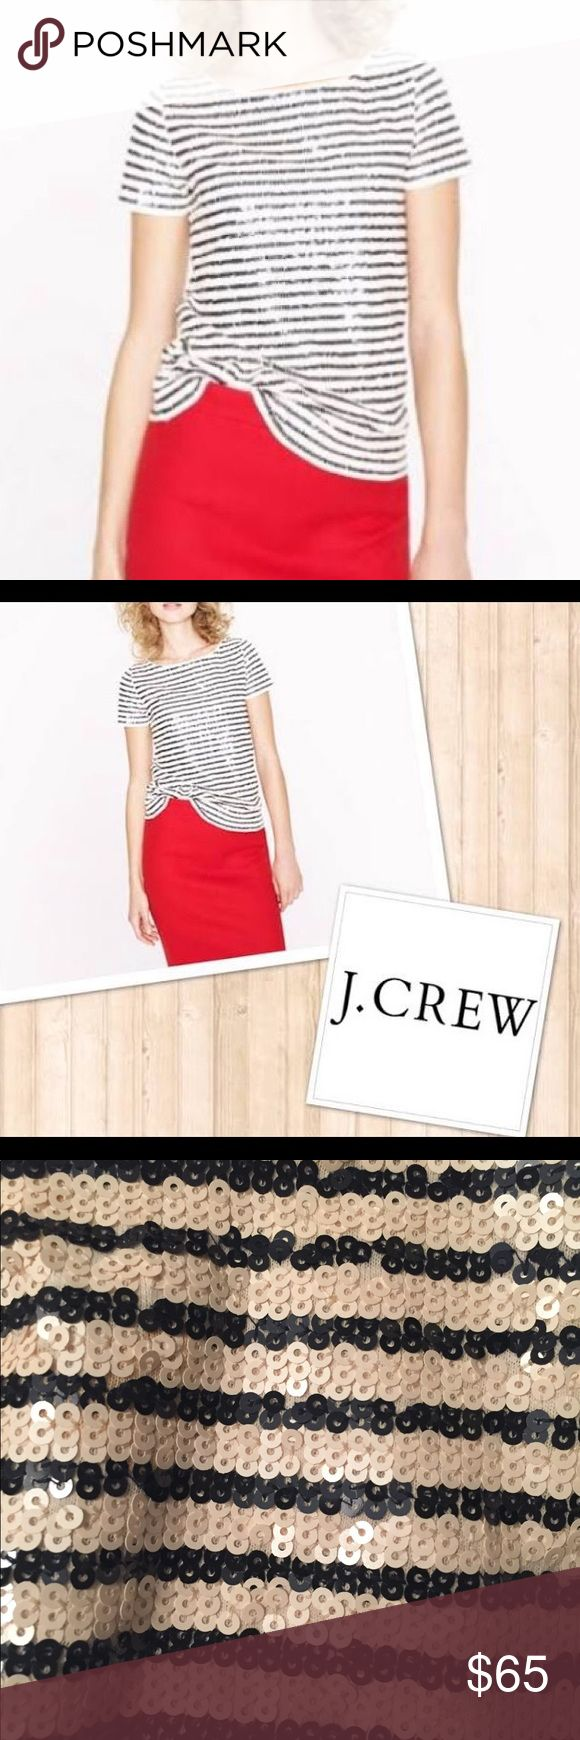 J.Crew black and Winter white sequin top-NWOT J.Crew gorgeous sequin top that with striped black and winter white. Great or layering or wearing for a special occcasion. Lined under the collar so it doesn't stratch.a must have in forever chic sailer stripes. All Hand finished sequin.  A luxe texture with a hint of shimmer. A bateau neckline and a slim slightly a-line silhouette. 100% cotton. Hand wash cold inside out. Lay flat to dry. Do not wring. Warm iron on reverse side. J. Crew Tops…